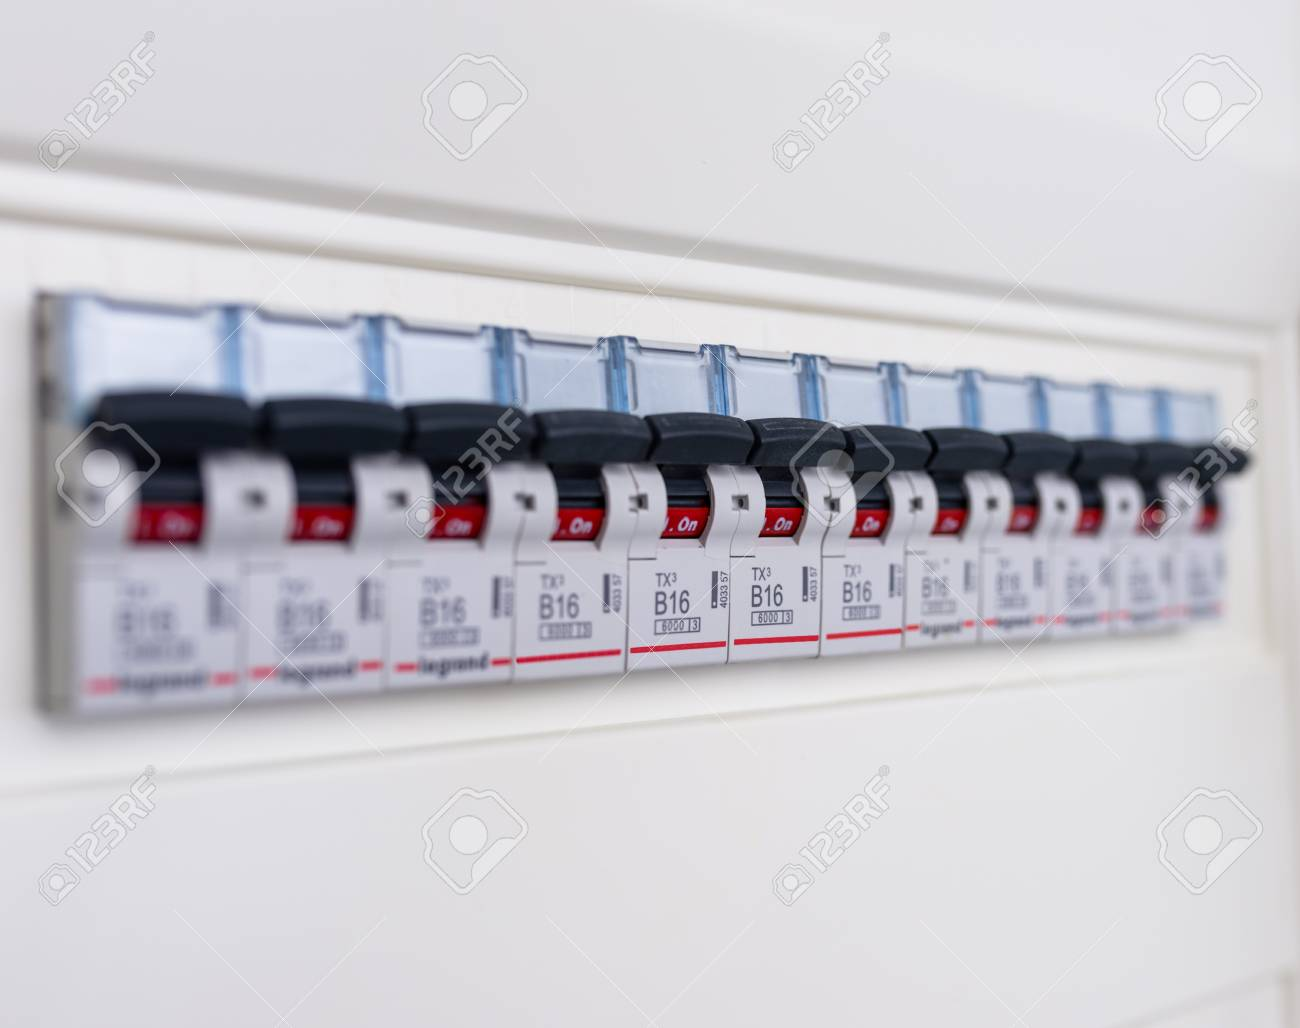 [SCHEMATICS_48EU]  Switches In Electrical Fuse Box. Many Black Circuit Breakers.. Stock Photo,  Picture And Royalty Free Image. Image 116641206. | Power Fuse Box |  | 123RF.com